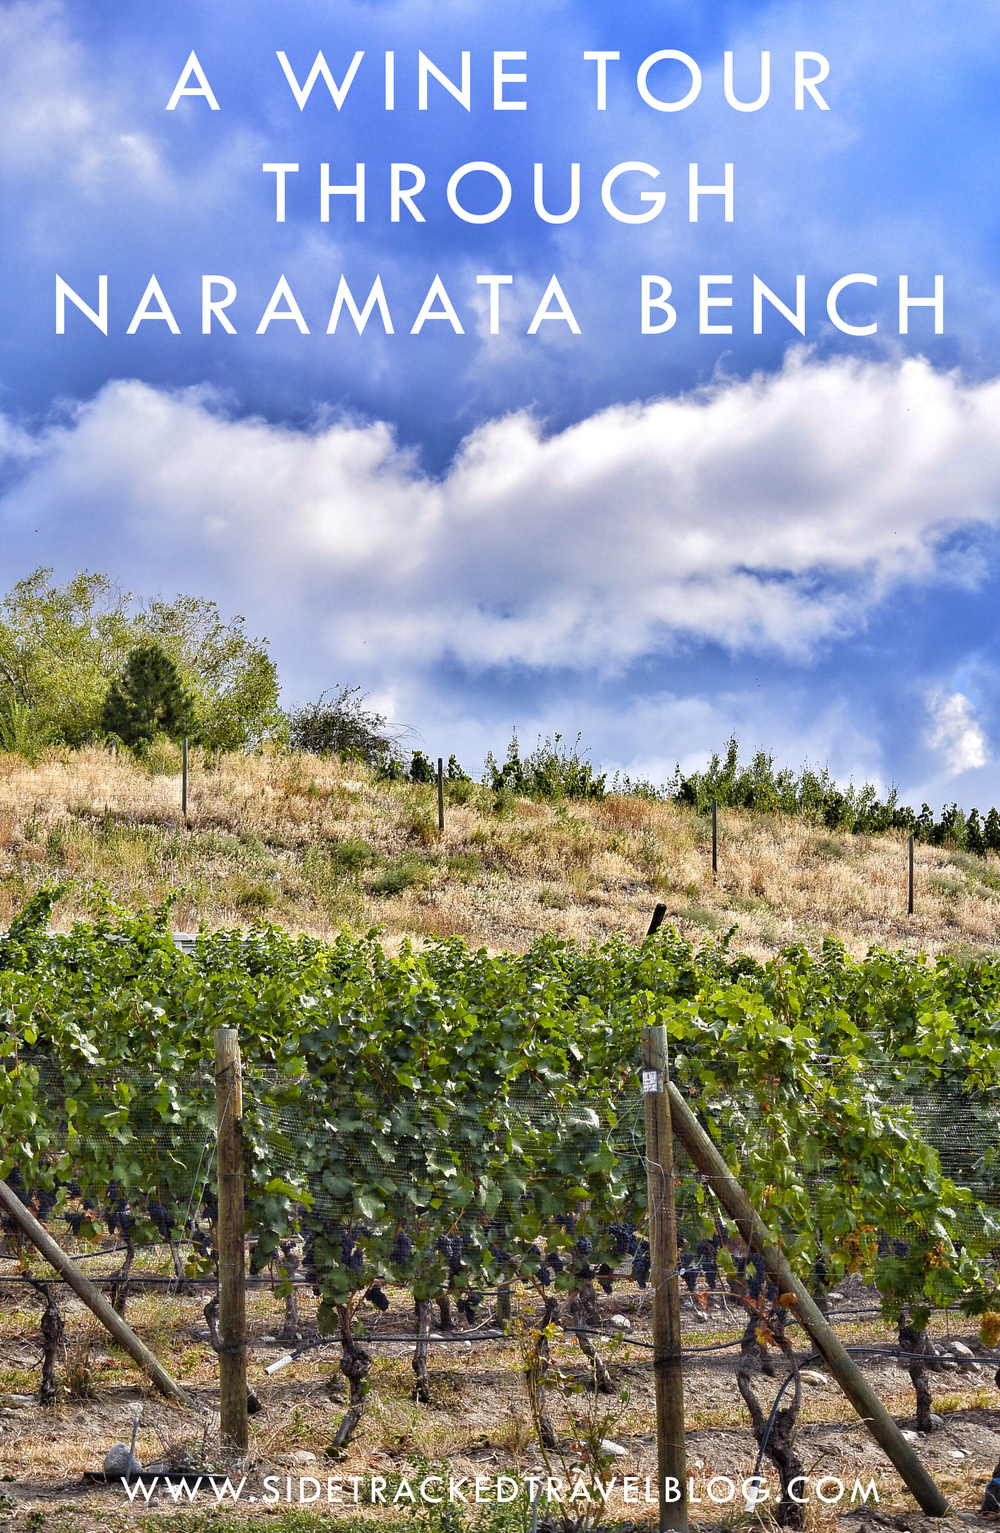 A Wine Tour Through Naramata Bench